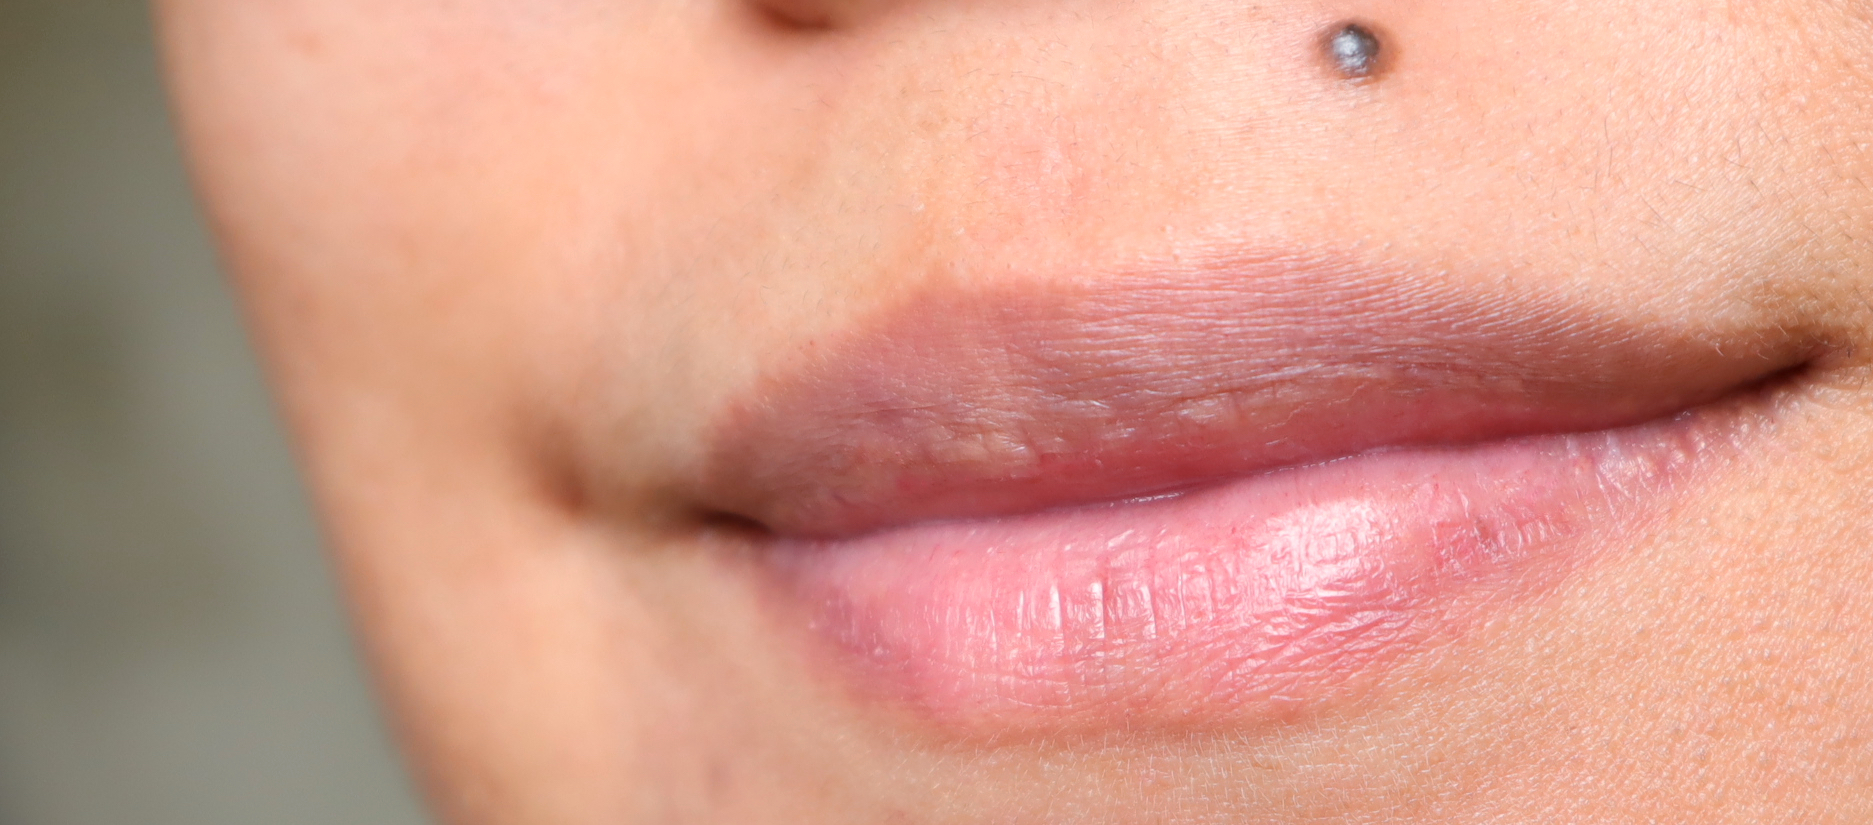 My bare lips, for your reference. I have pretty thin lips, as they go.